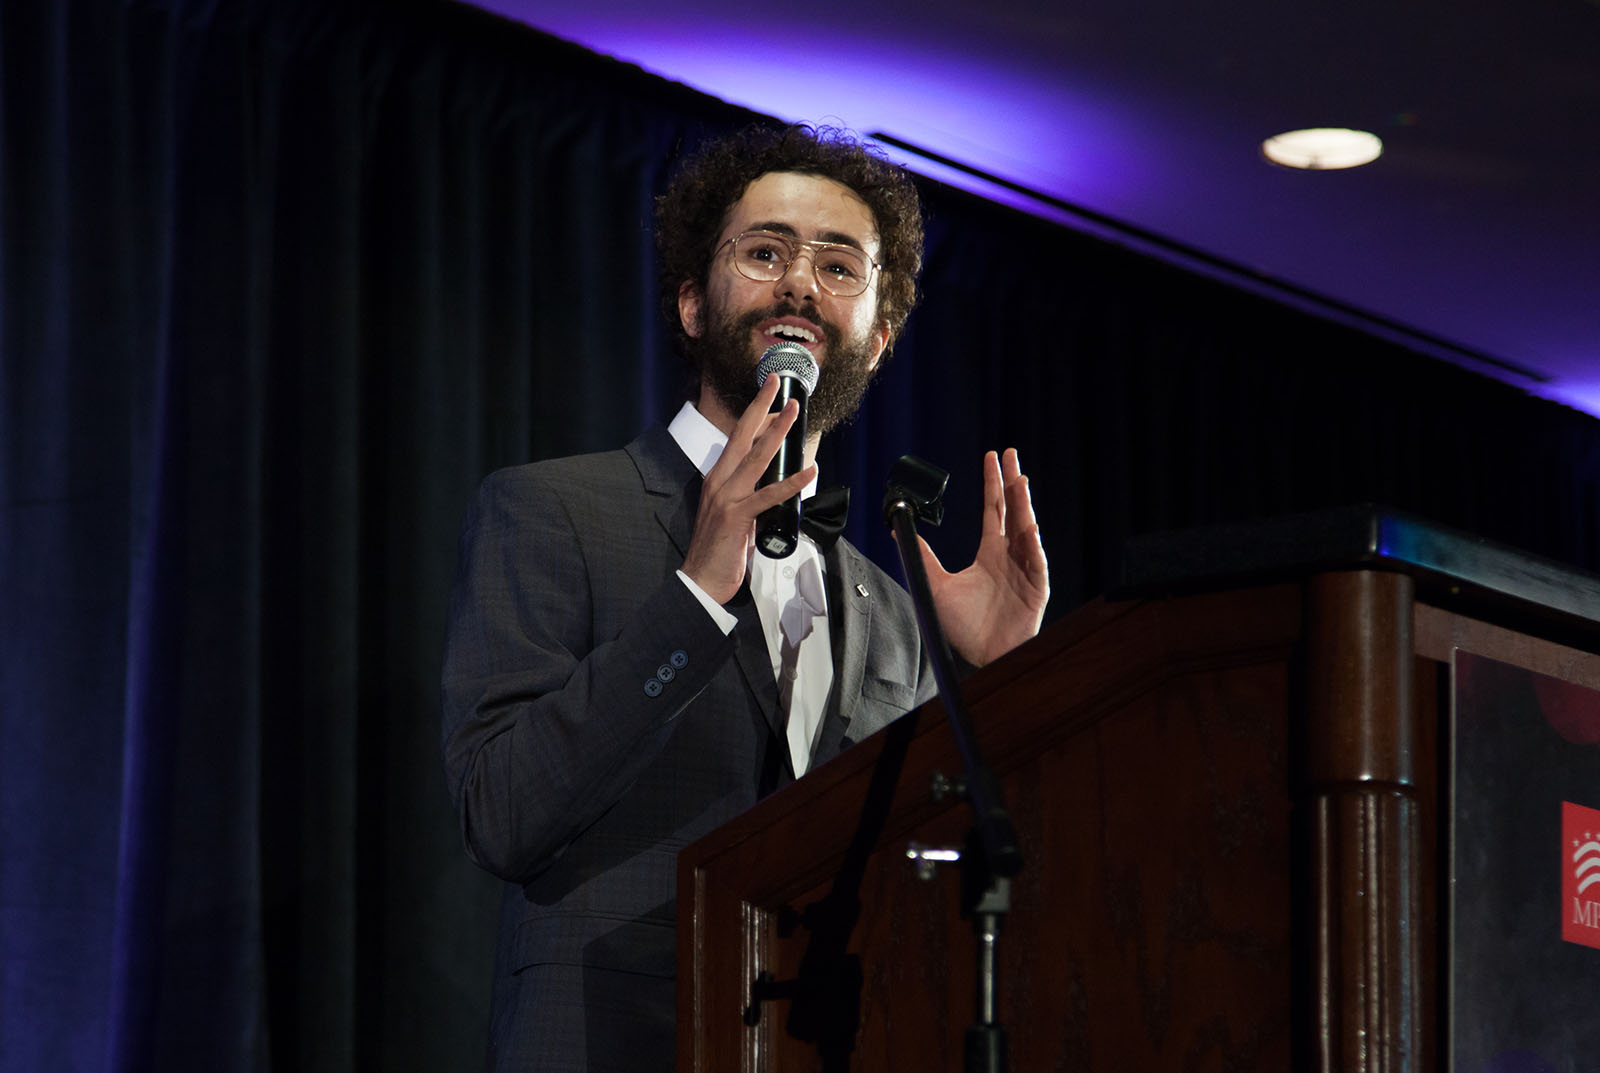 Waad al-Kateab And Ramy Youssef Earn Nominations At The 2020 Peabody Awards